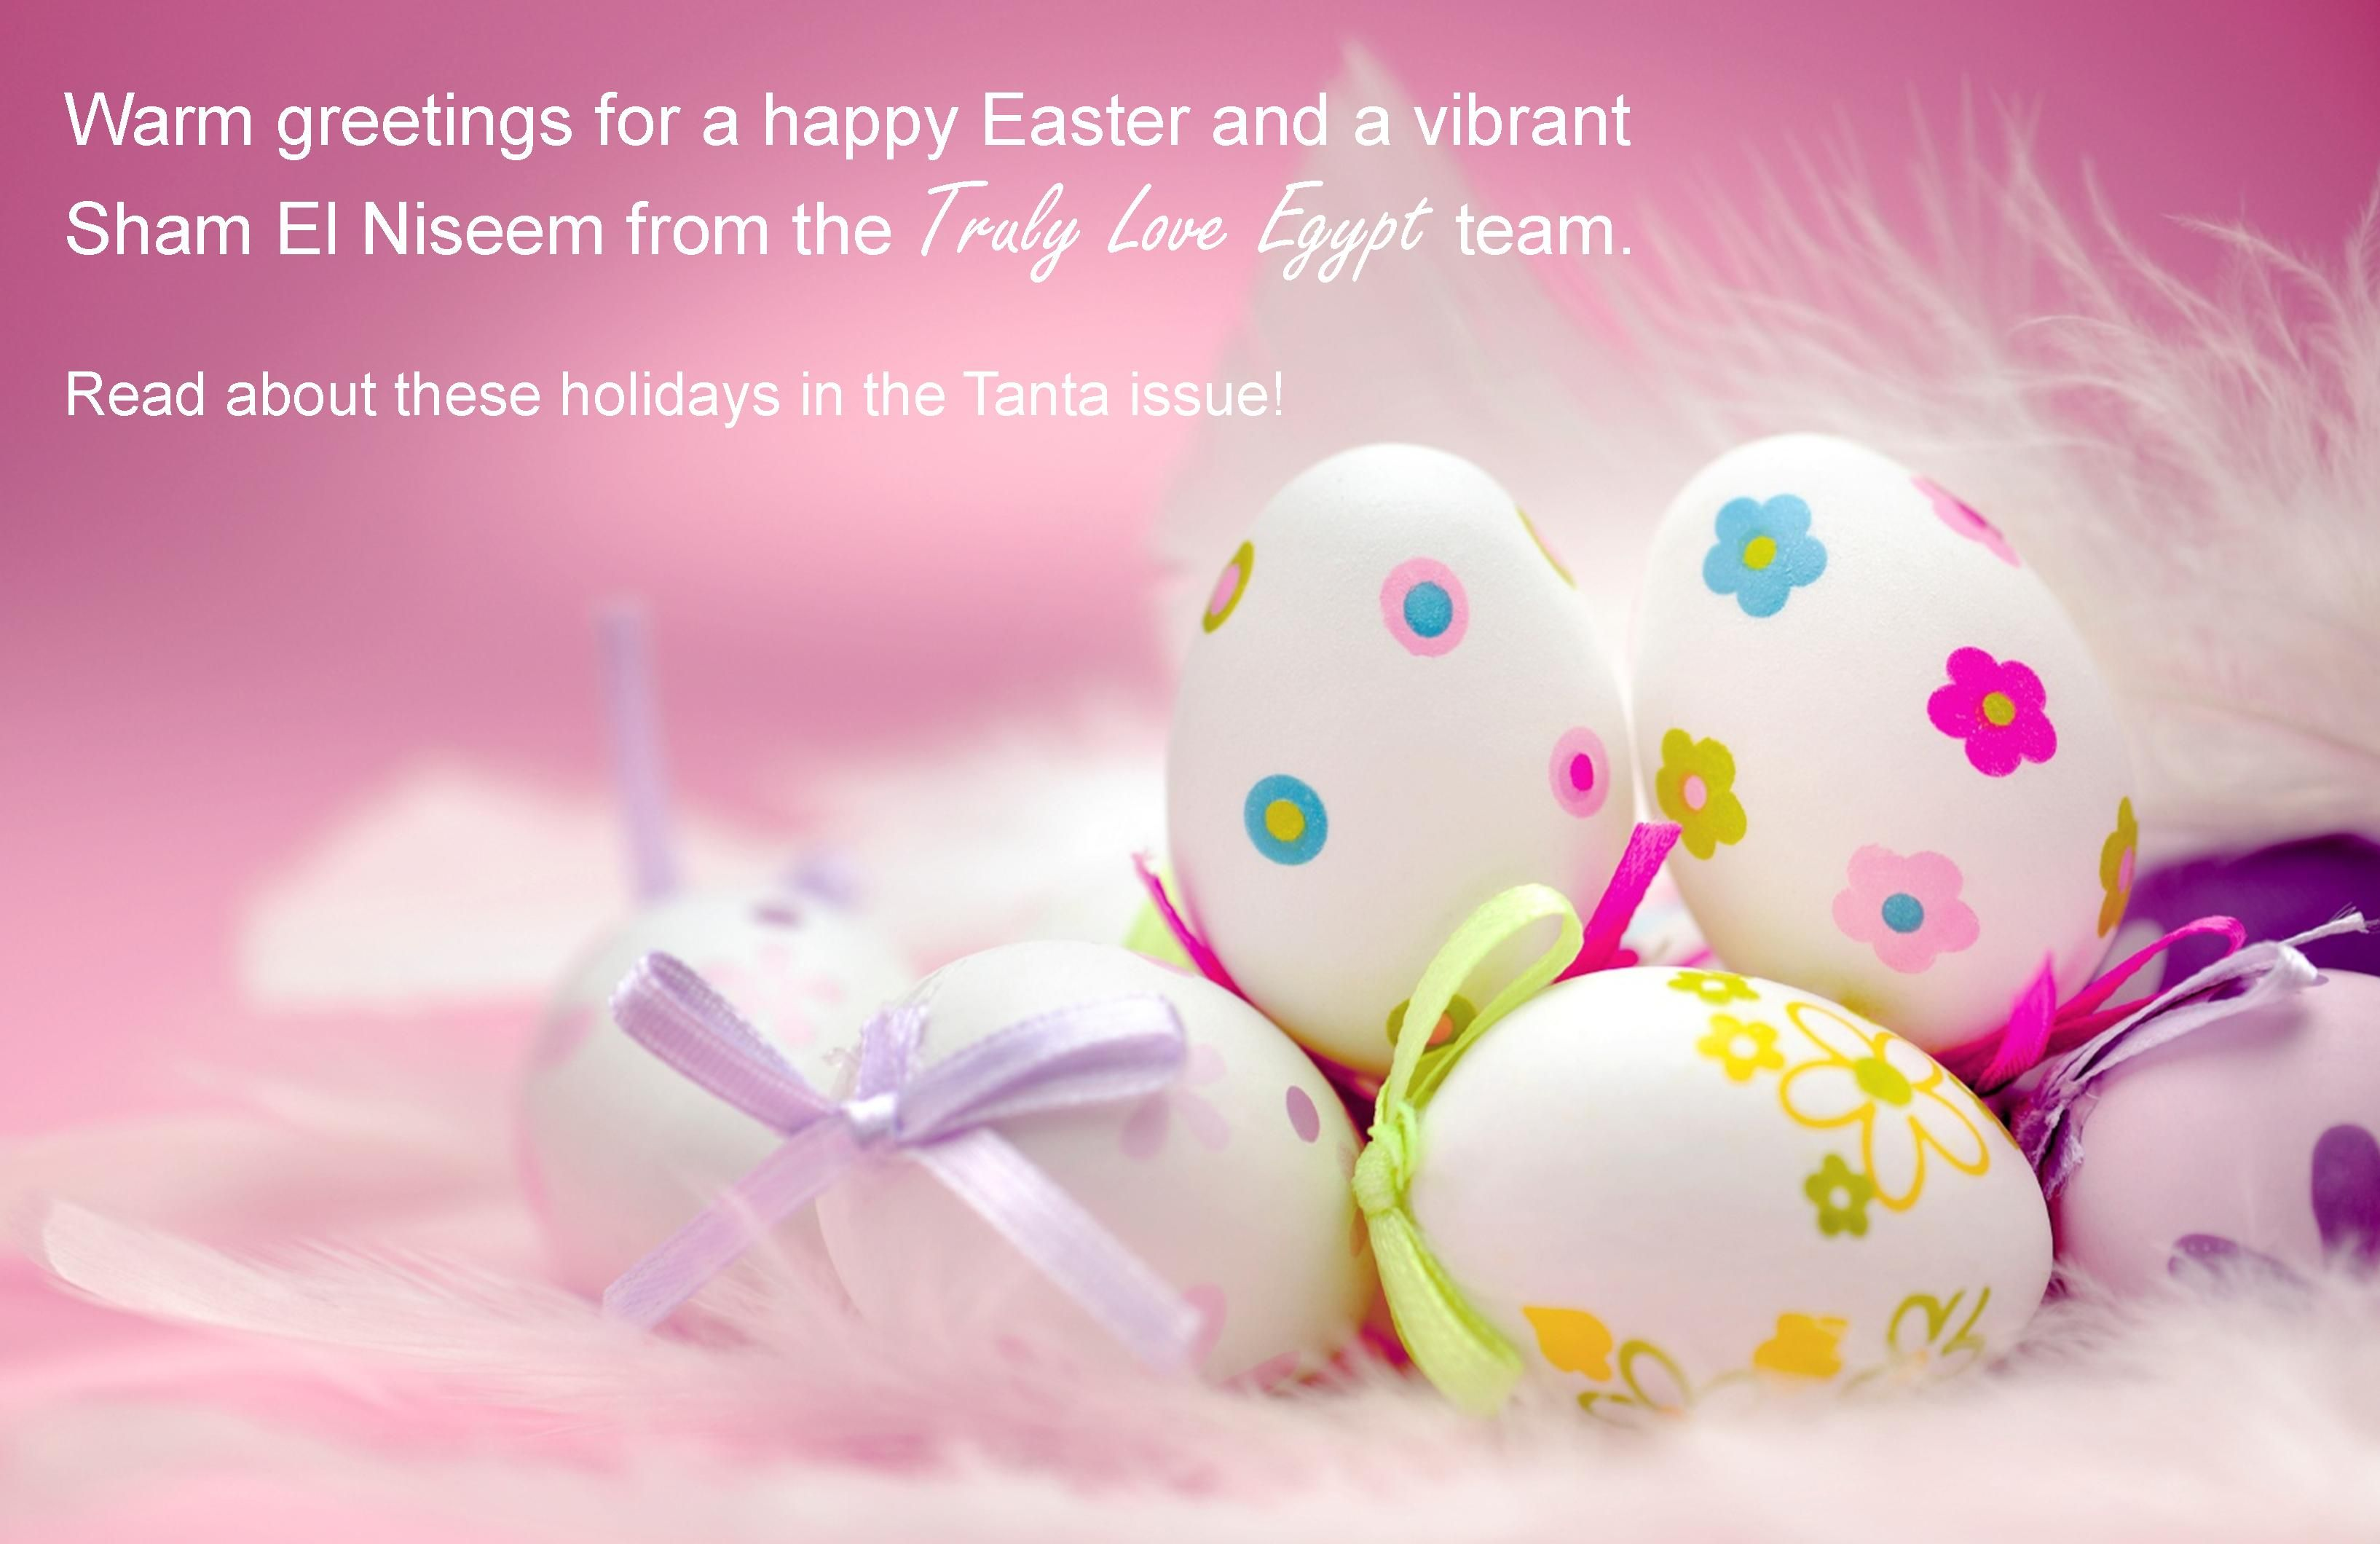 Holiday greetings for a happy easter to my friends worldwide and a holiday greetings for a happy easter to my friends worldwide and a wonderful sham el niseem kristyandbryce Gallery